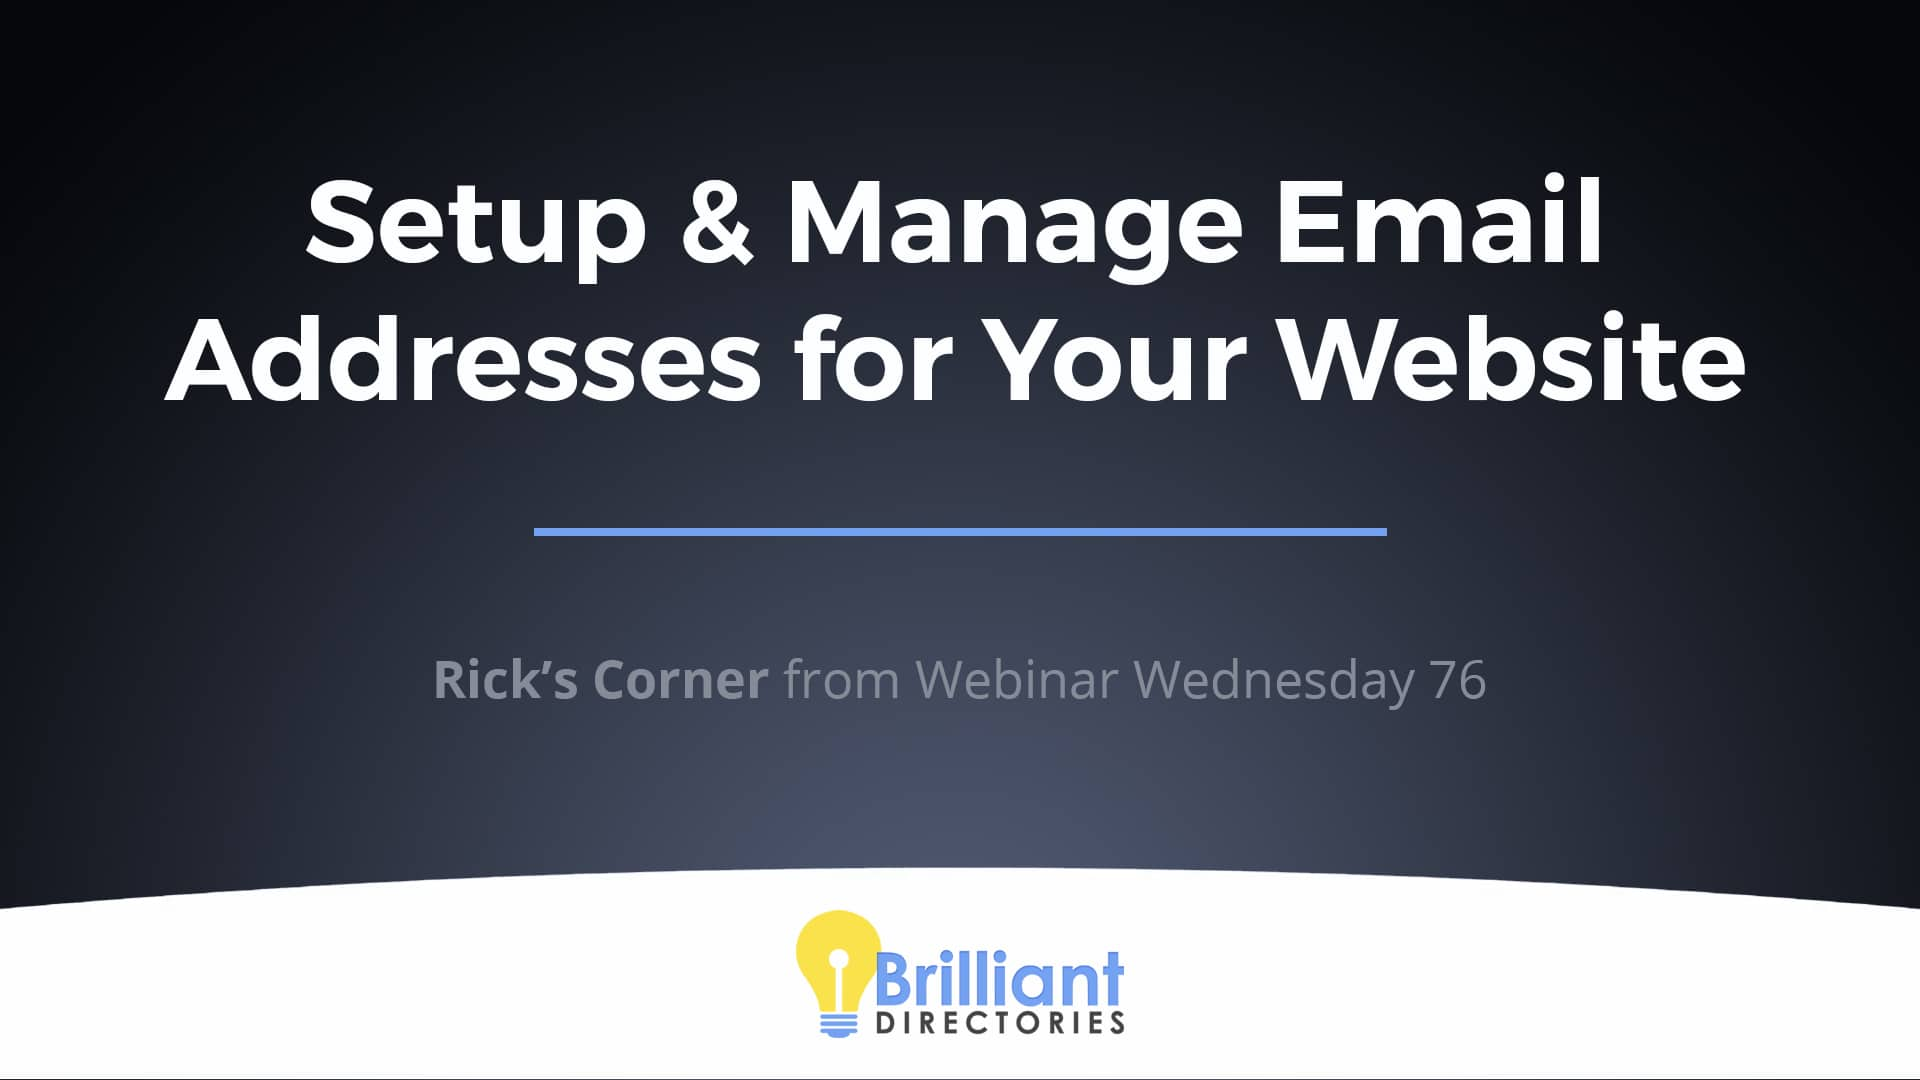 Setup & Manage Email Address for Your Website